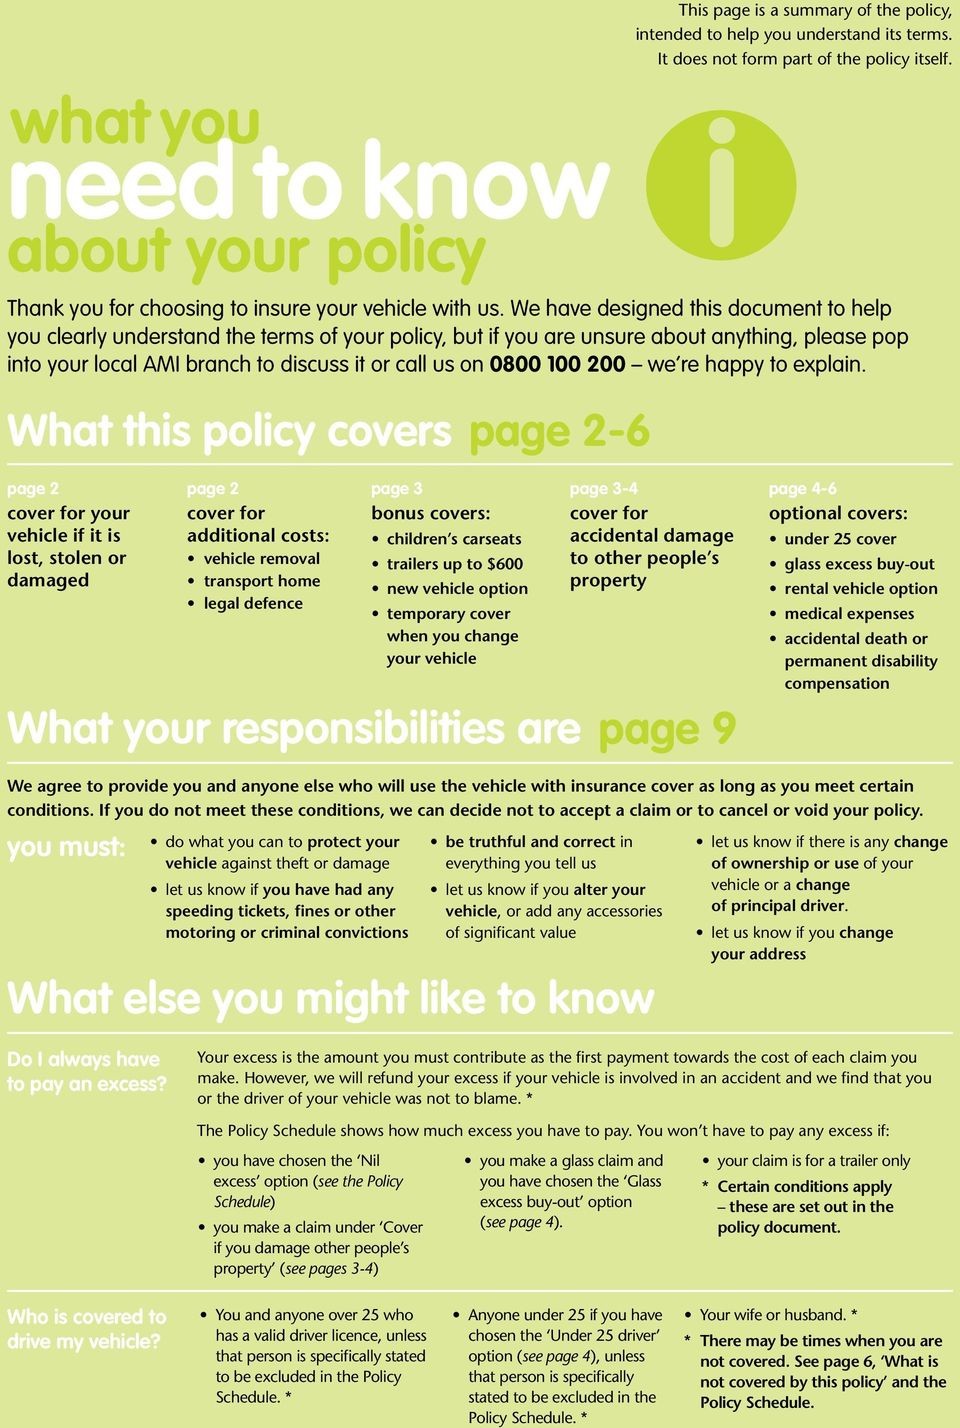 We have designed this document to help you clearly understand the terms of your policy, but if you are unsure about anything, please pop into your local AMI branch to discuss it or call us on 0800